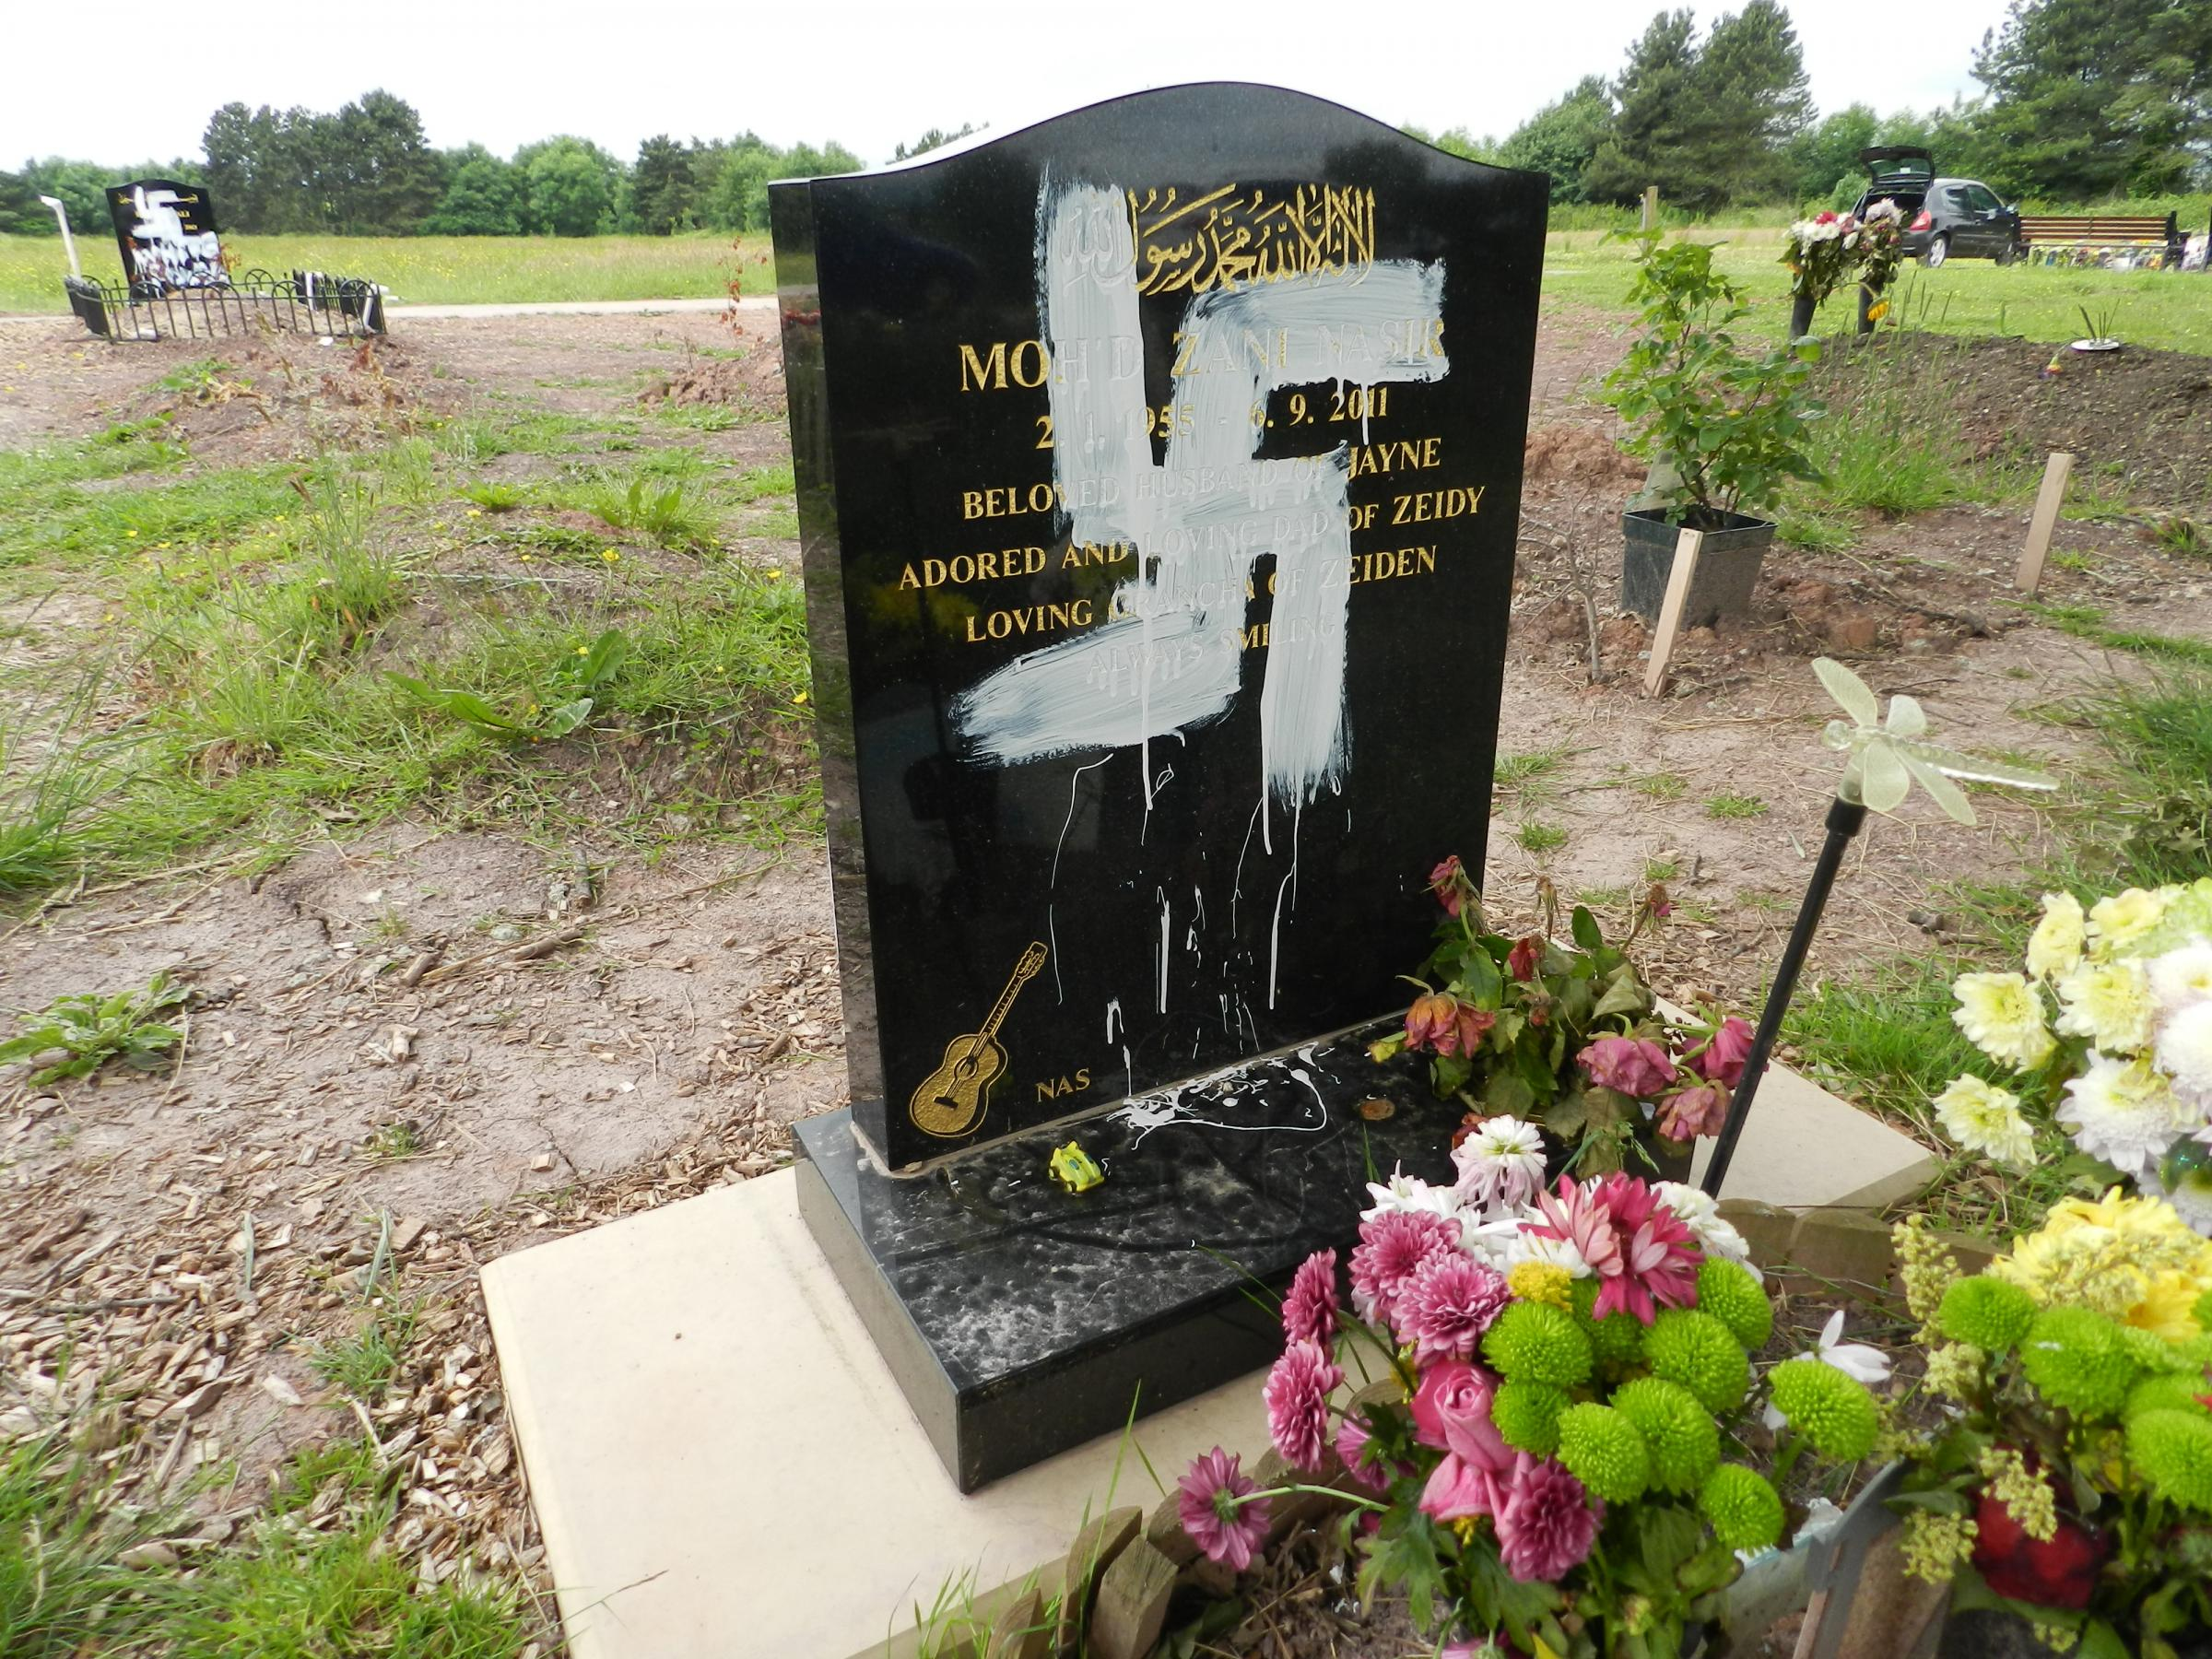 Muslim graves desecrated by racist vandals